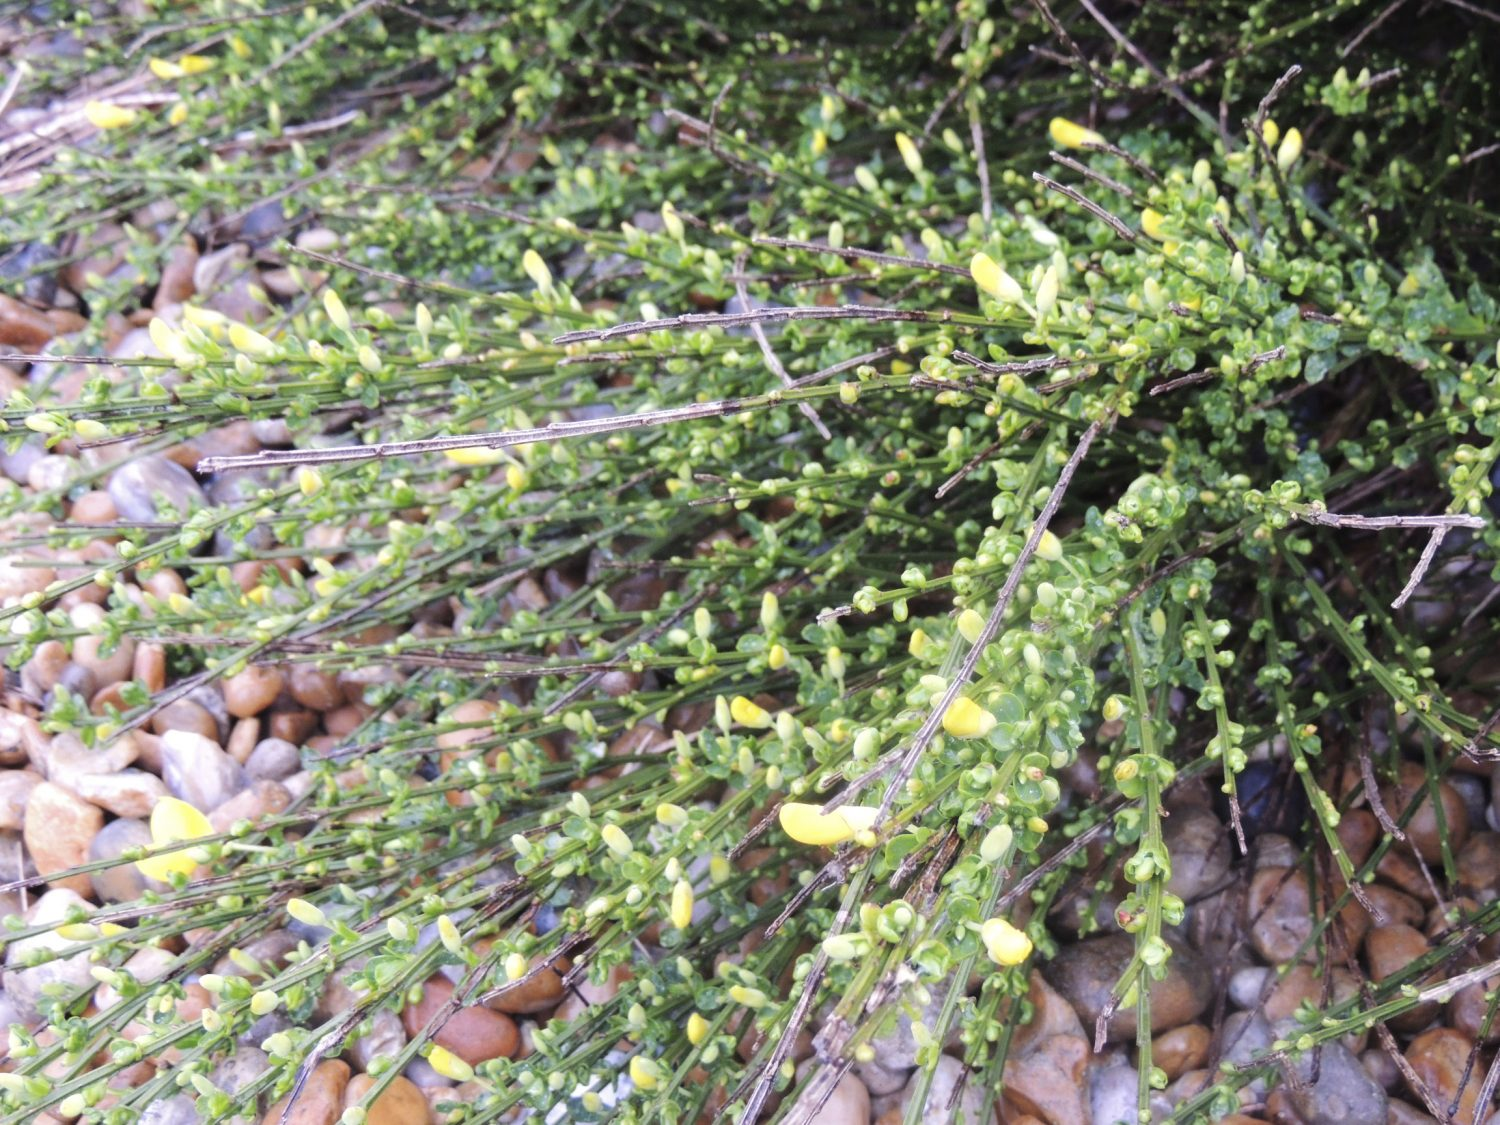 I'm not sure that I was expecting to see prostrate broom on the beach. It is just coming into flower now and is a really unusual pioneer species. Its flowers are pea shaped and a rather softer yellow than the clouds of broom up by the roadside